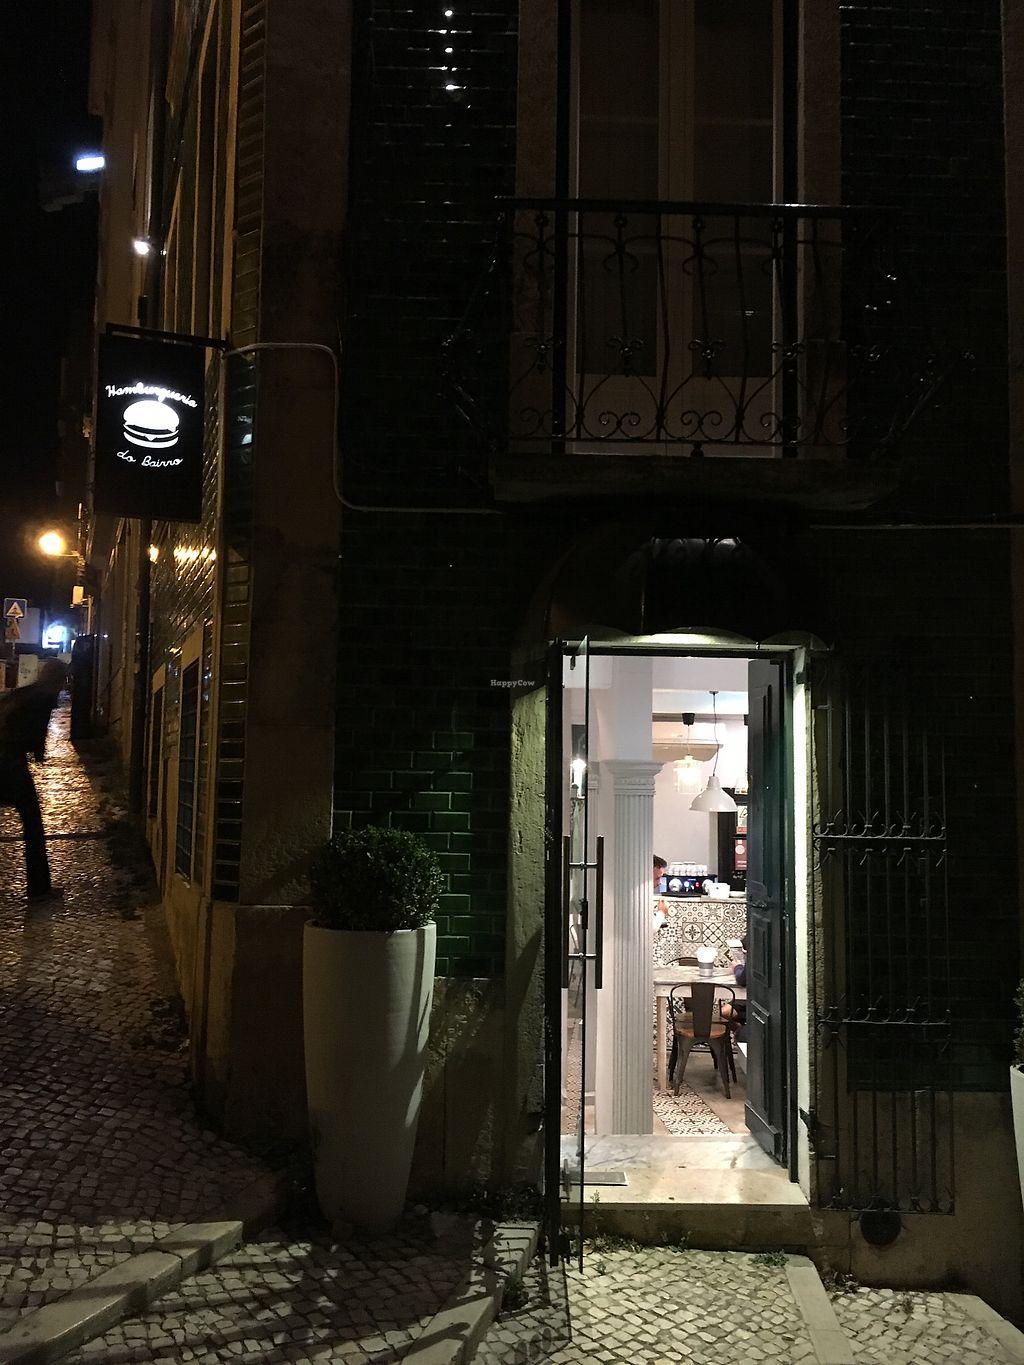 """Photo of Hamburgueria do Bairro - Abarracamento  by <a href=""""/members/profile/hack_man"""">hack_man</a> <br/>Outside at night  <br/> September 10, 2017  - <a href='/contact/abuse/image/60316/303133'>Report</a>"""